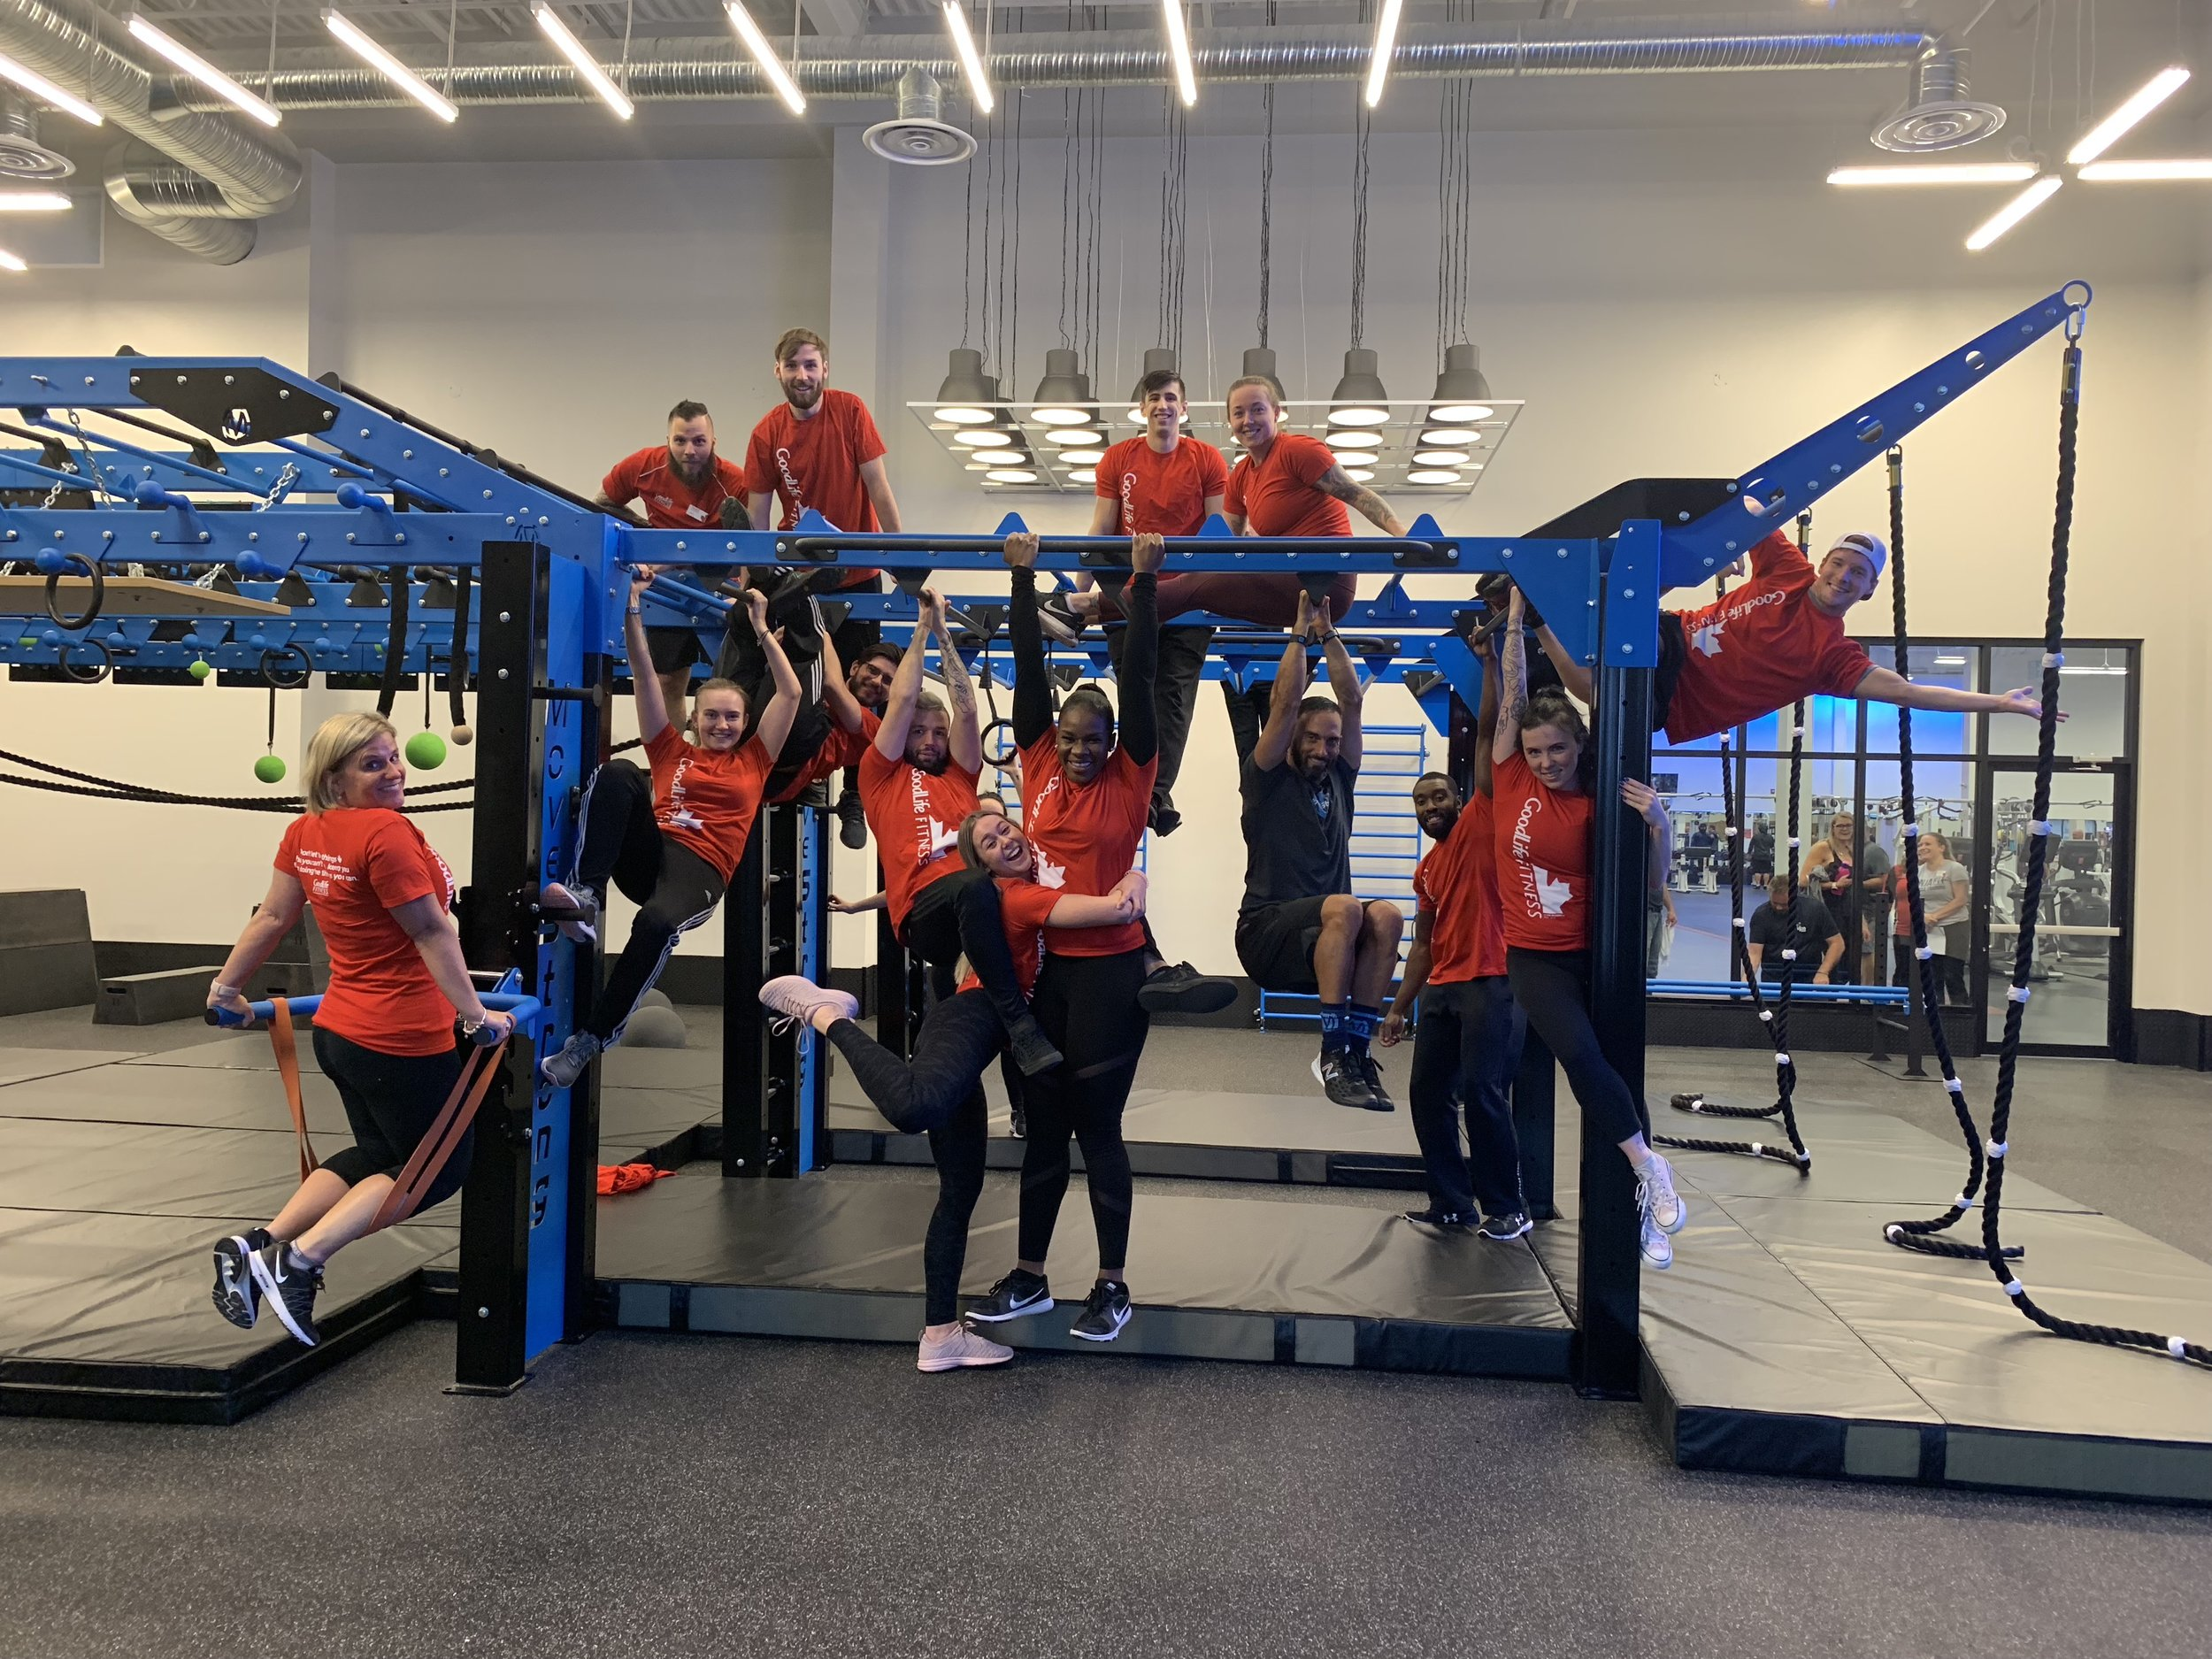 Workshop for MoveStrong obstacle course and ninja warrior training